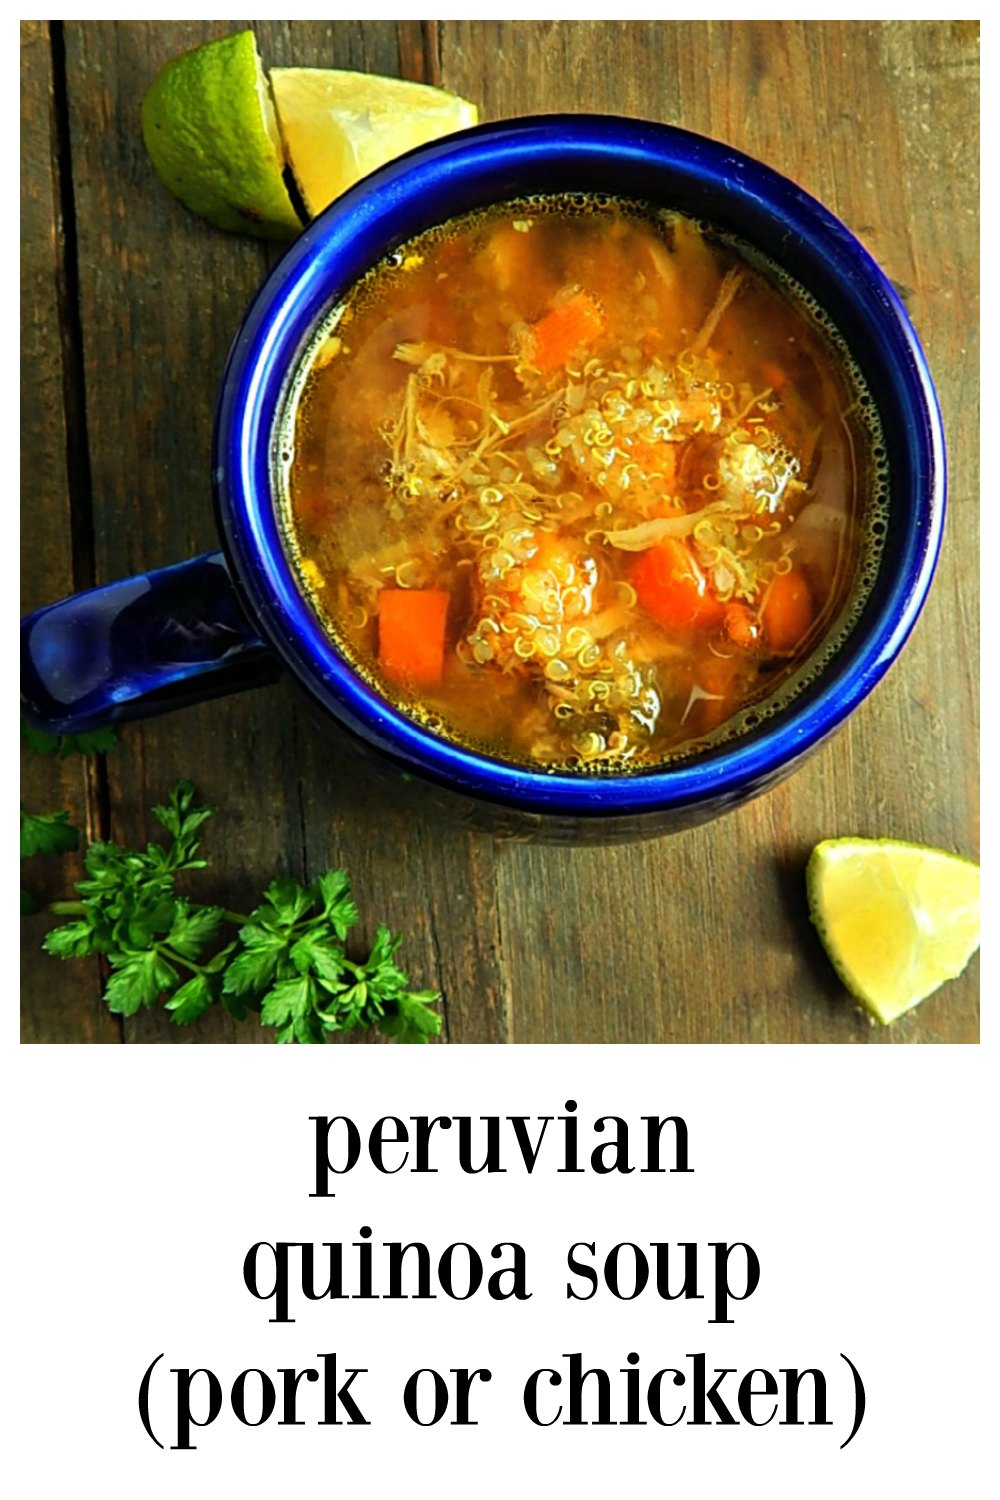 Peruvian Quinoa Soup - So Crazy Good you'll never guess it's healthy! Make with chicken turkey & pork. Try it with Green Sauce! #QuinaSoup #Soup #PeruvianSoup #PeruvianQuinoaSoup #HealthySoup #PeruvianRecipe #LatinAmerican #PorkSoup #PorkQuinoaSoup #PeruvianChickenSoup #ChickenQuinoaSoup